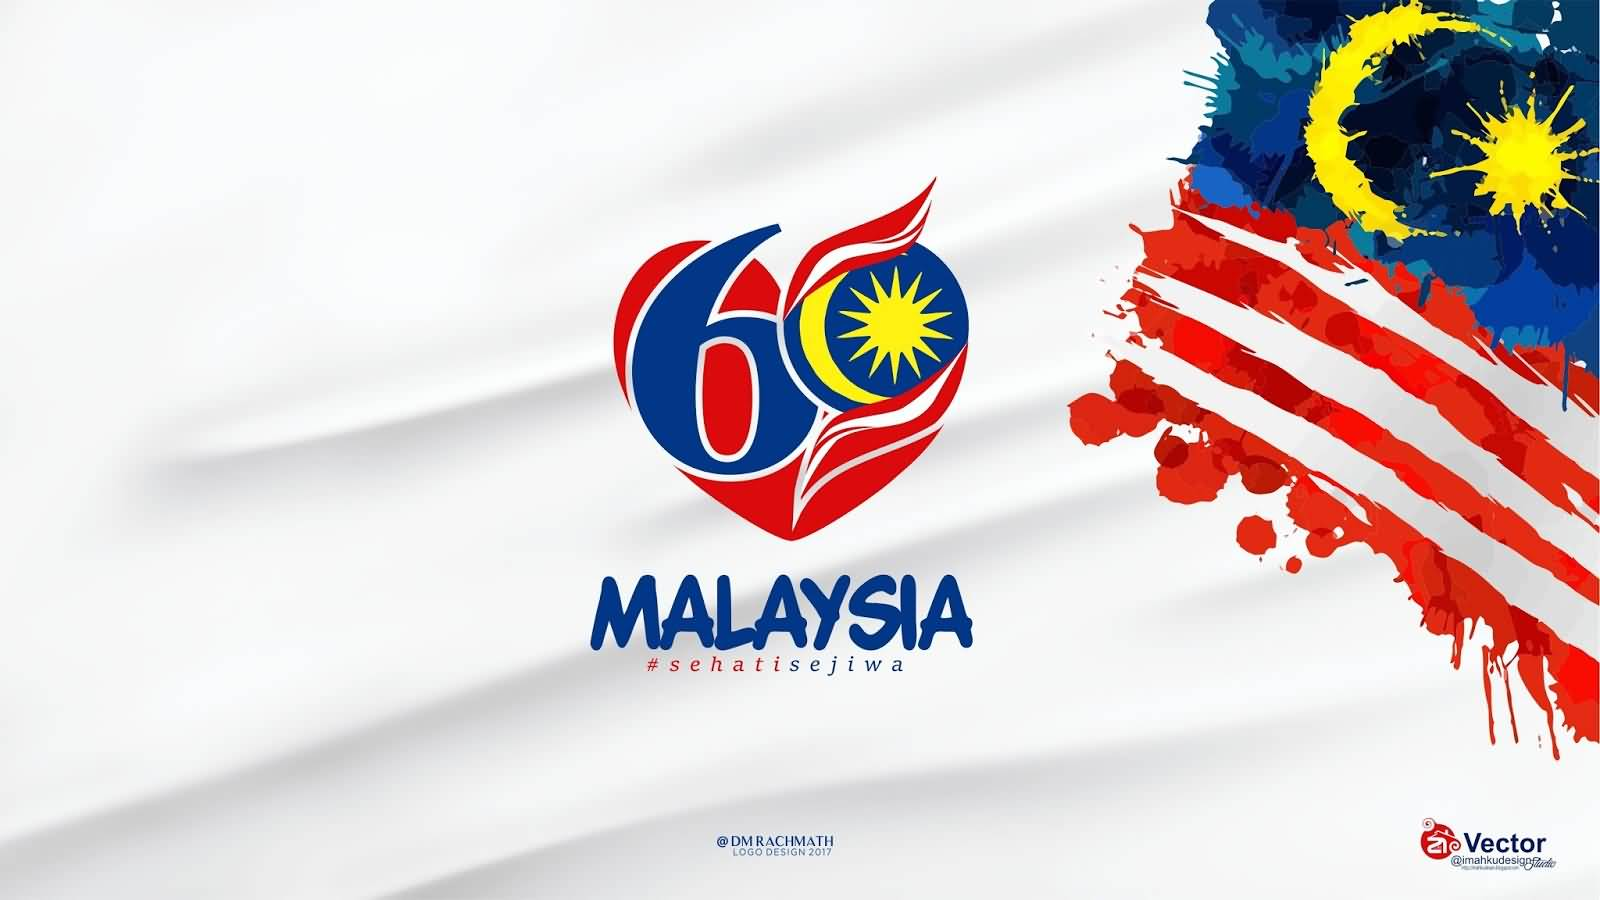 hari merdaka I am indeed proud that on this, the greatest day in malaya's history it falls to my lot to proclaim the formal independence of this country.